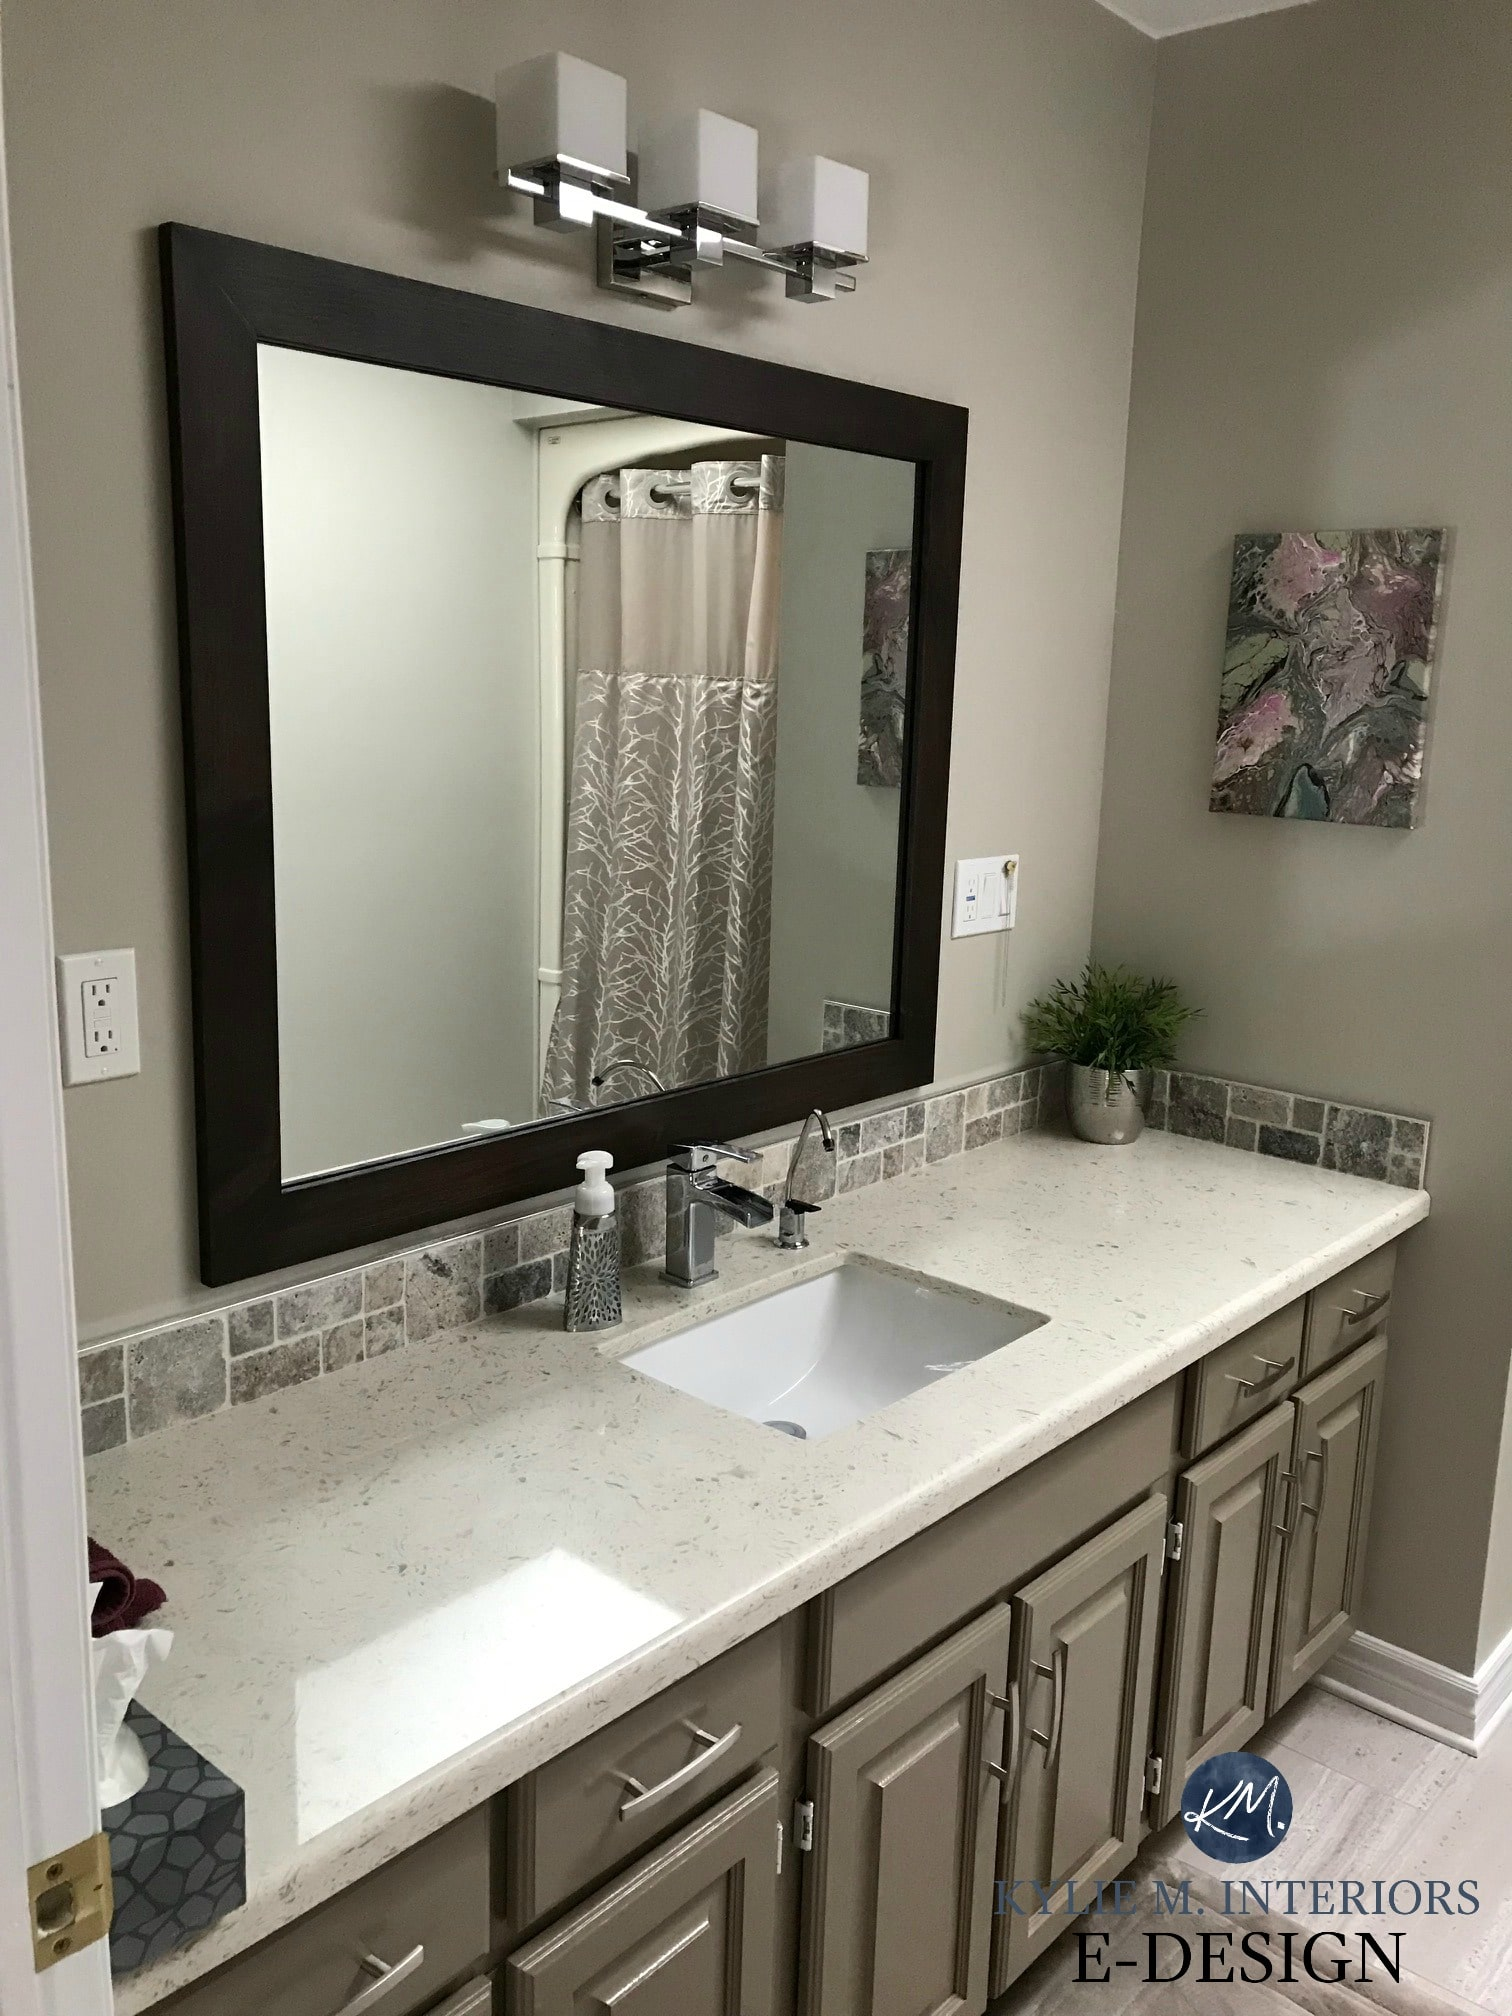 Benjamin Moore Kingsport Gray painted oak cabinets with ...